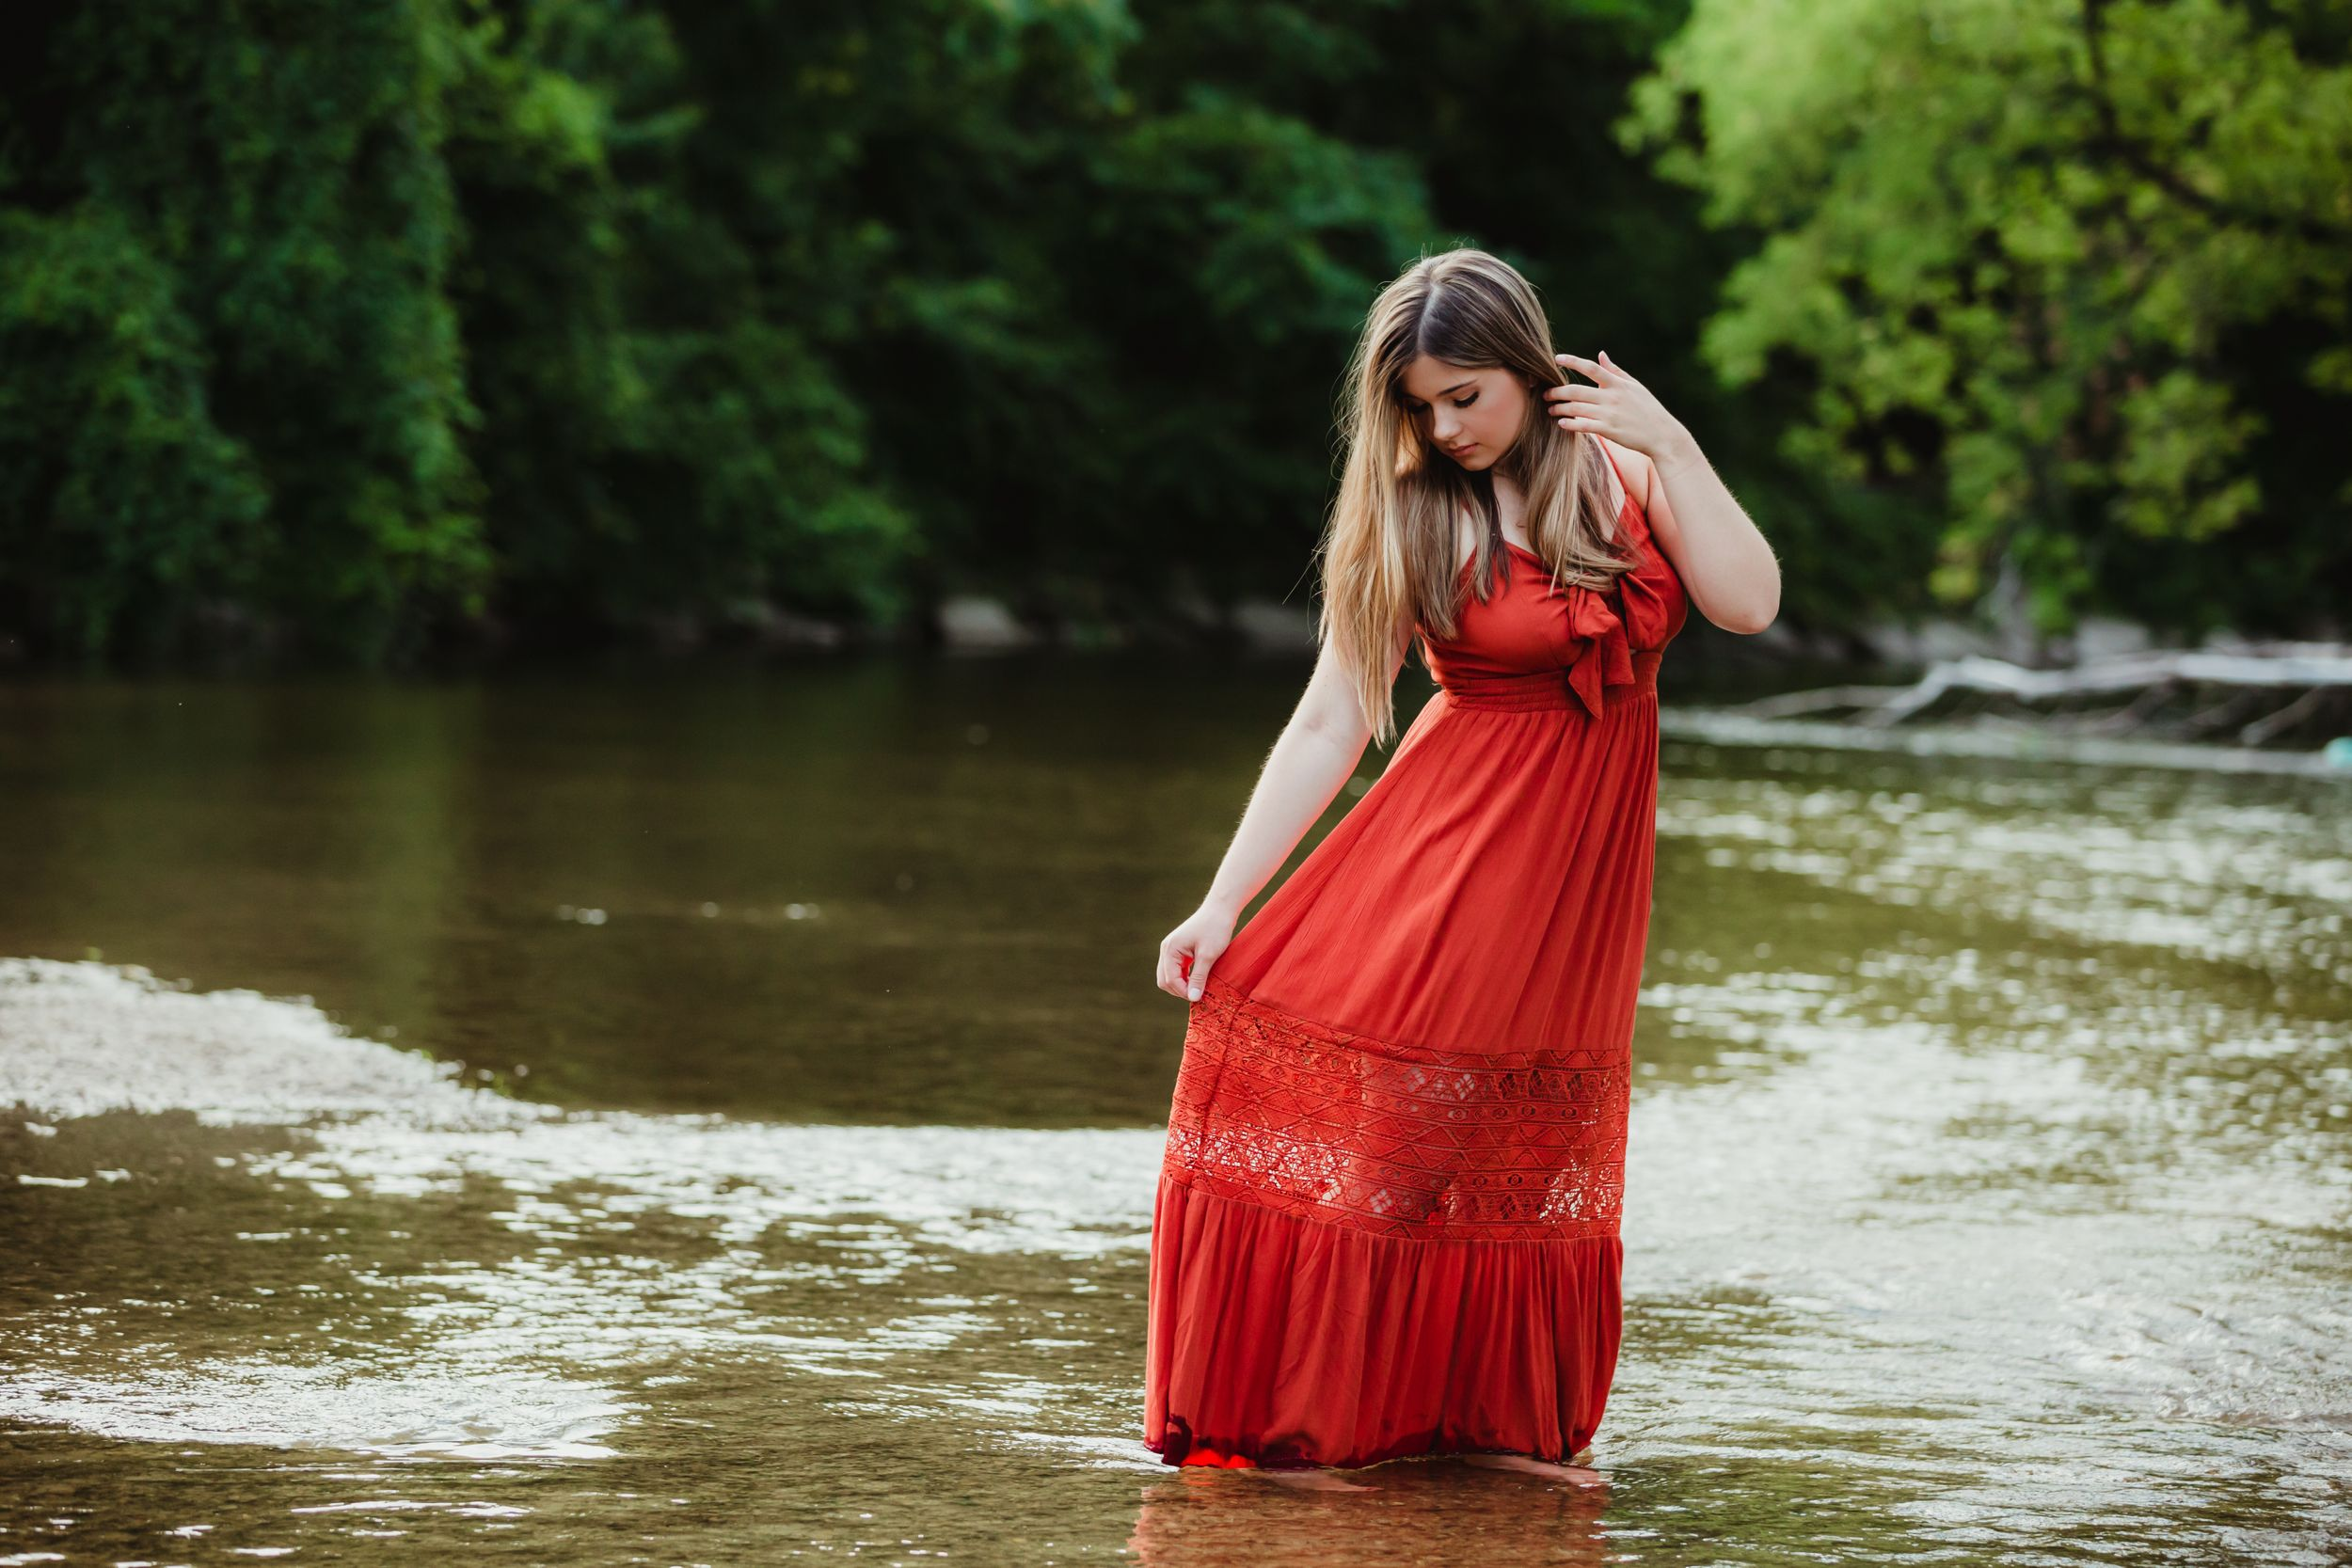 High school senior girl in a red dress standing in a river. She is holding the bottom of her dress out and looking down.